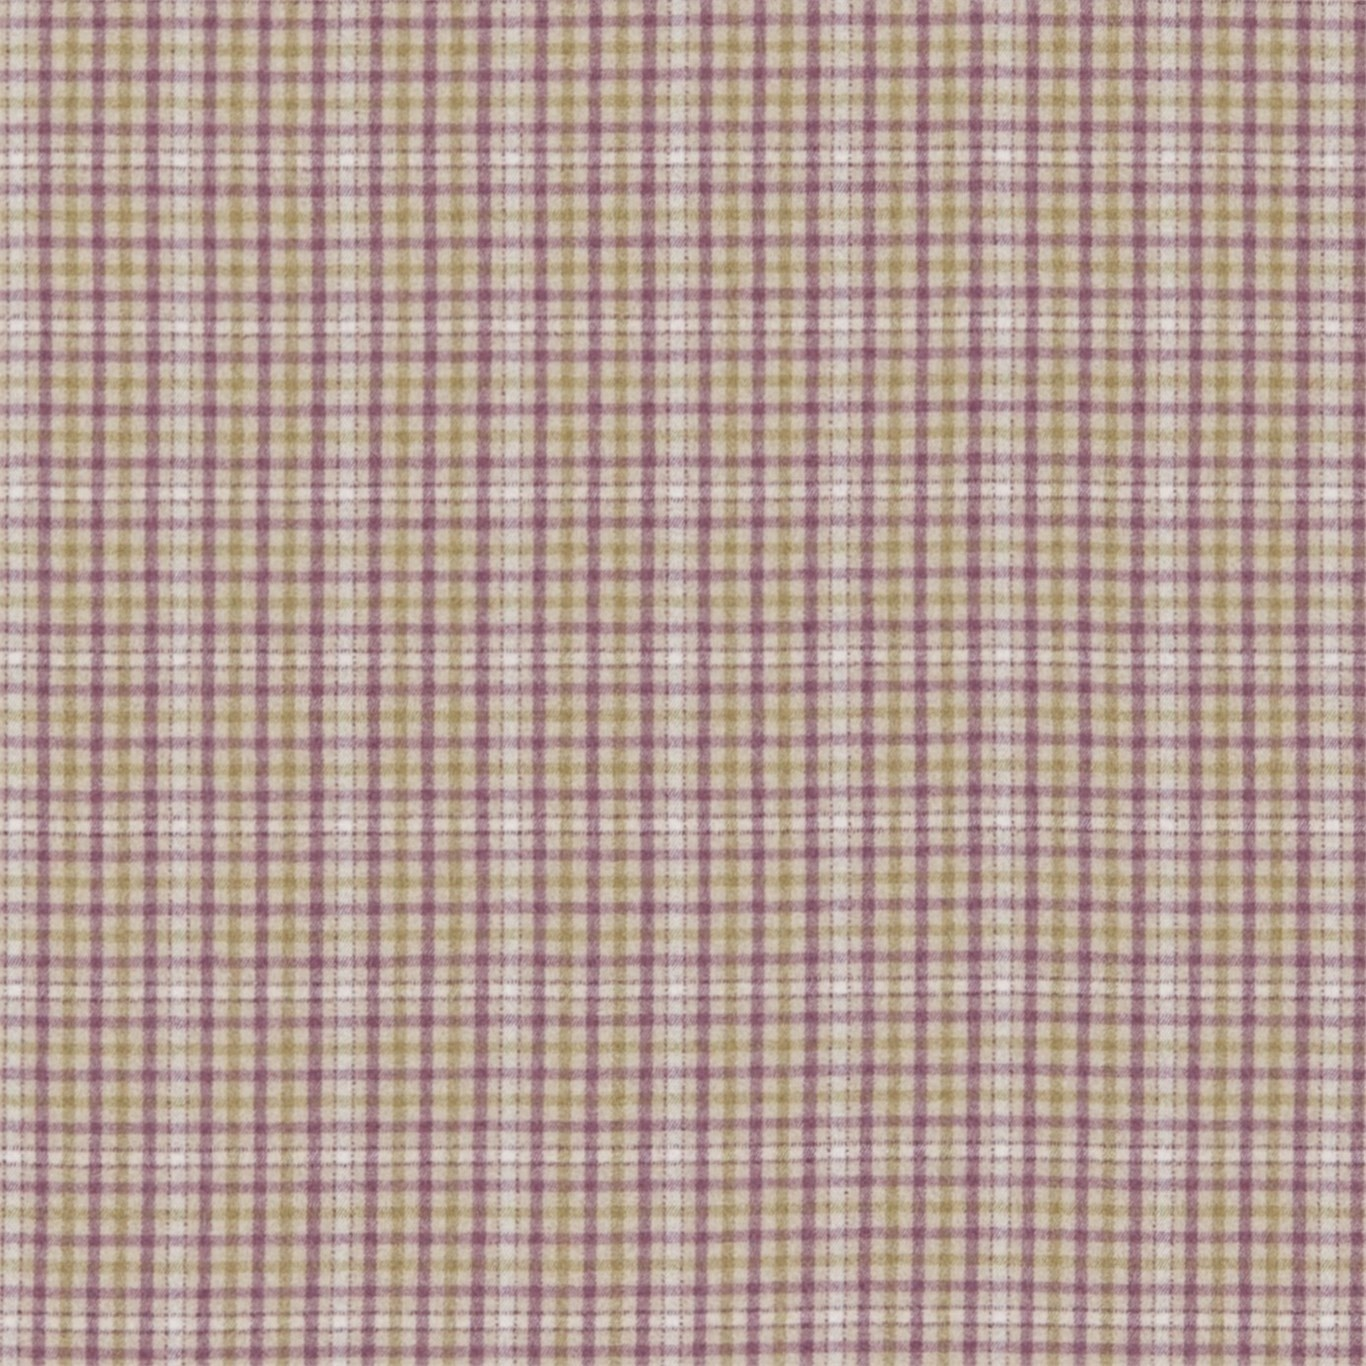 Image of Sanderson Langtry Mulberry/Sage Fabric 233258